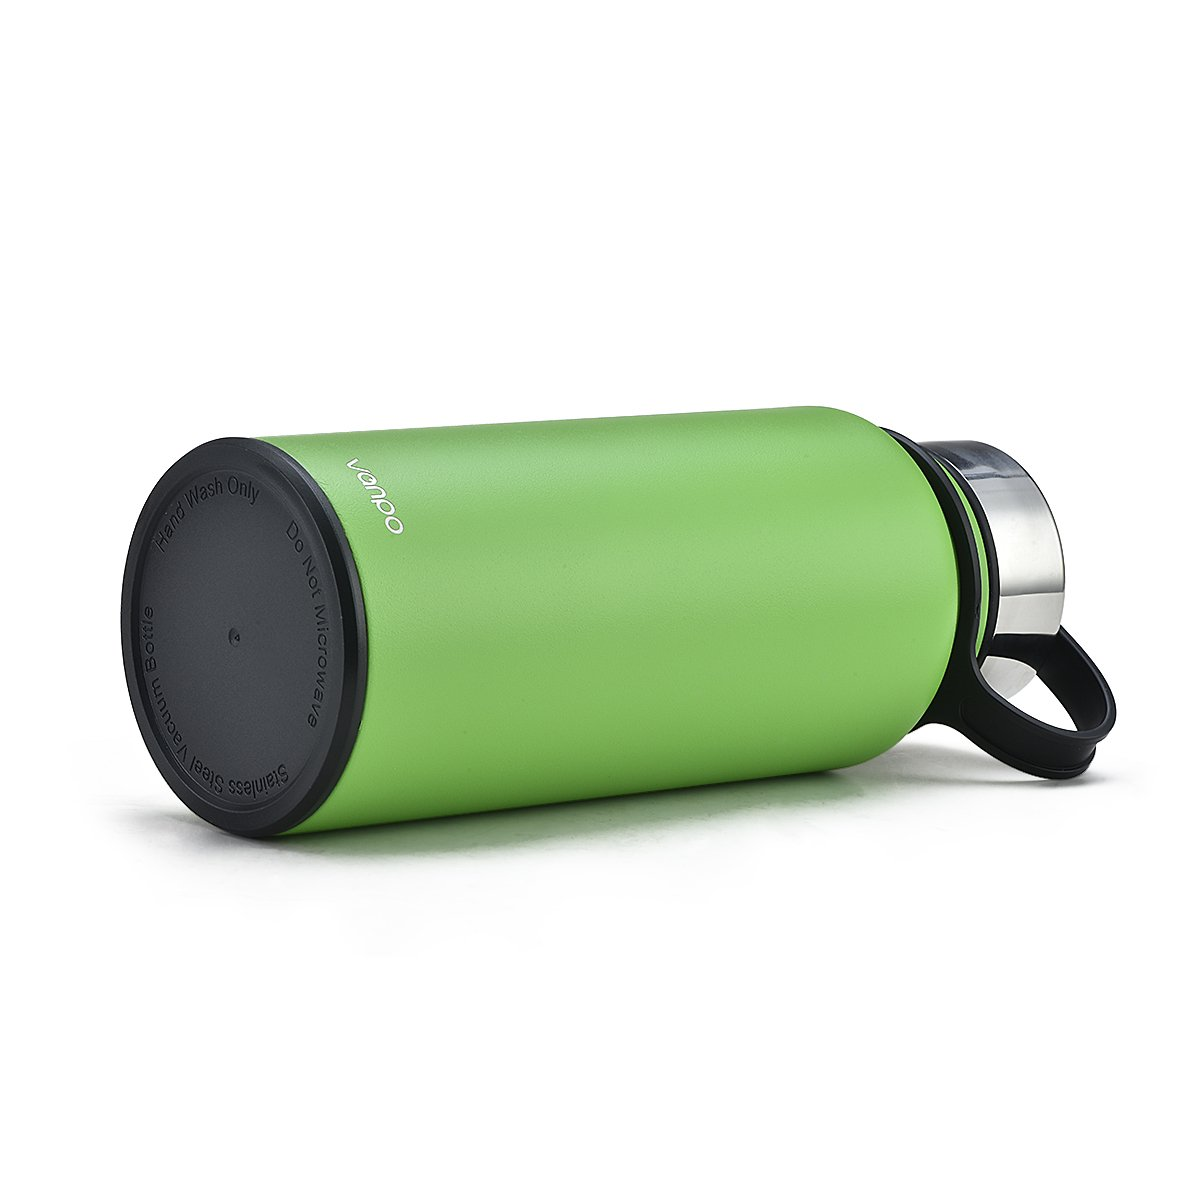 Vanpo Water Bottle 32 oz Wide Mouth Stainless Steel Insulated Double Wall Travel Bottle BPA Free Thermos(Green)